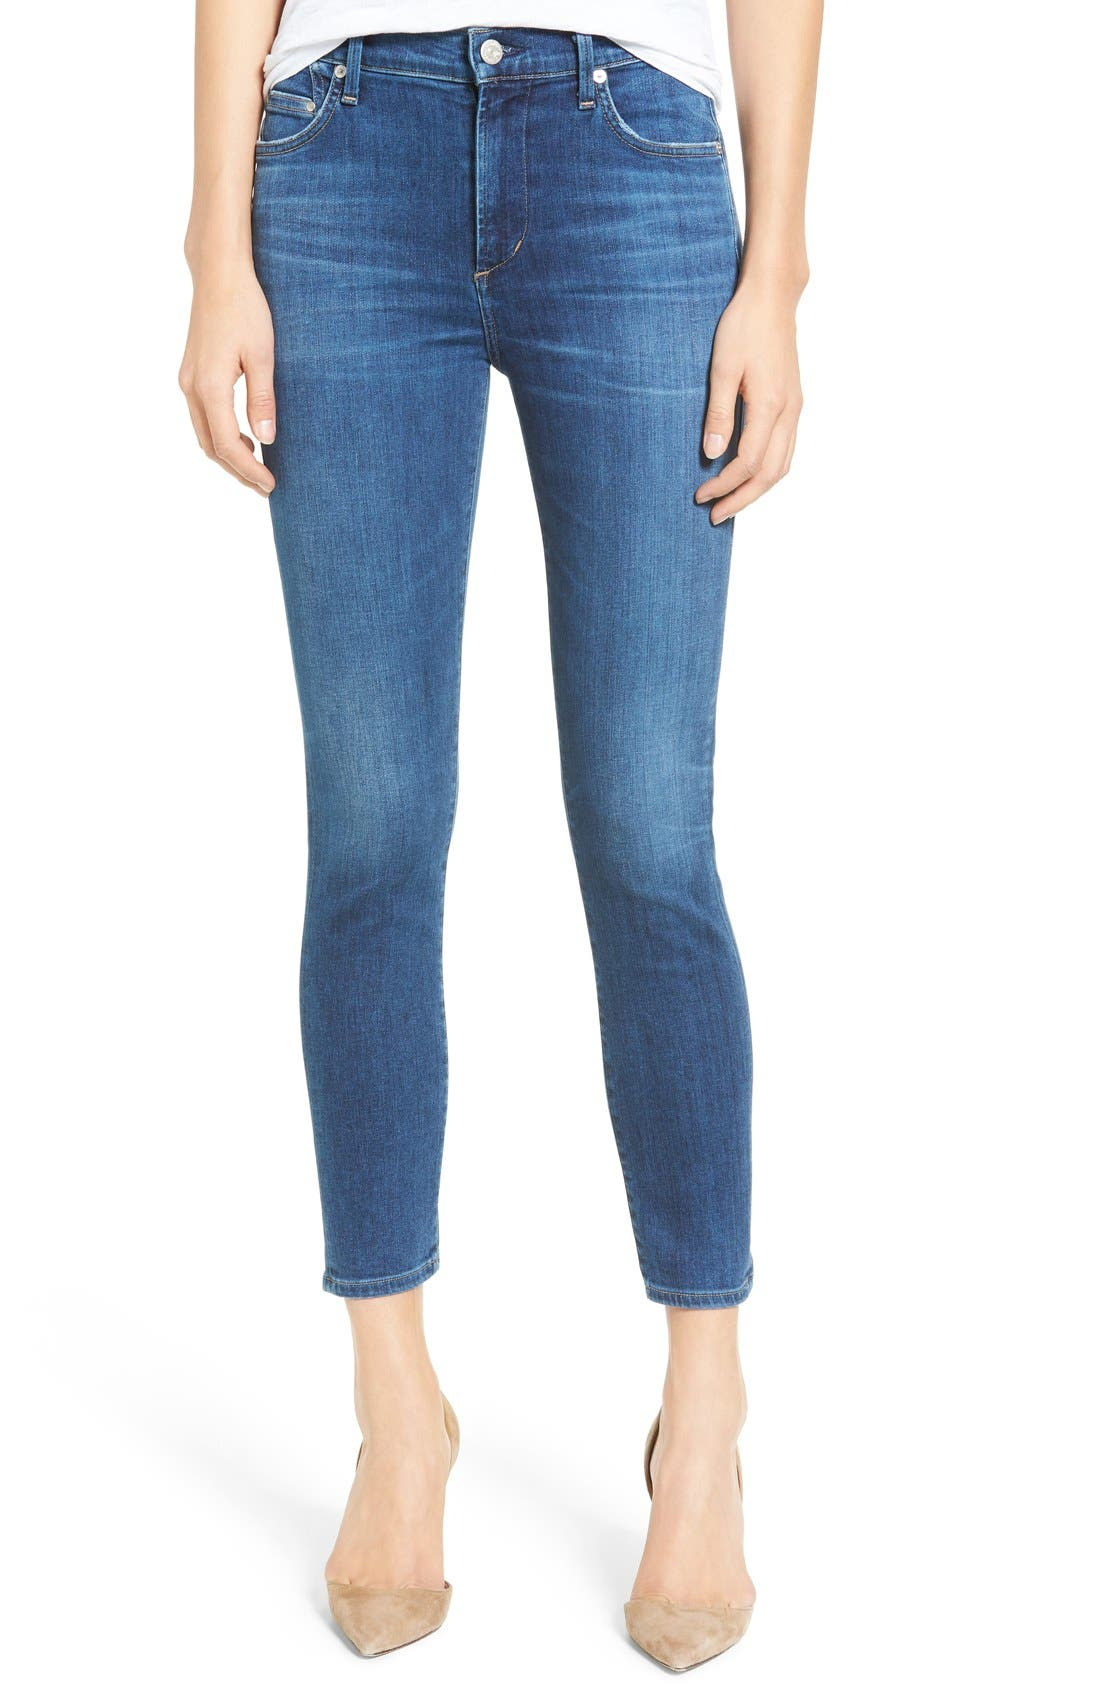 Rocket High Waist Crop Skinny Jeans,                         Main,                         color, Echoes